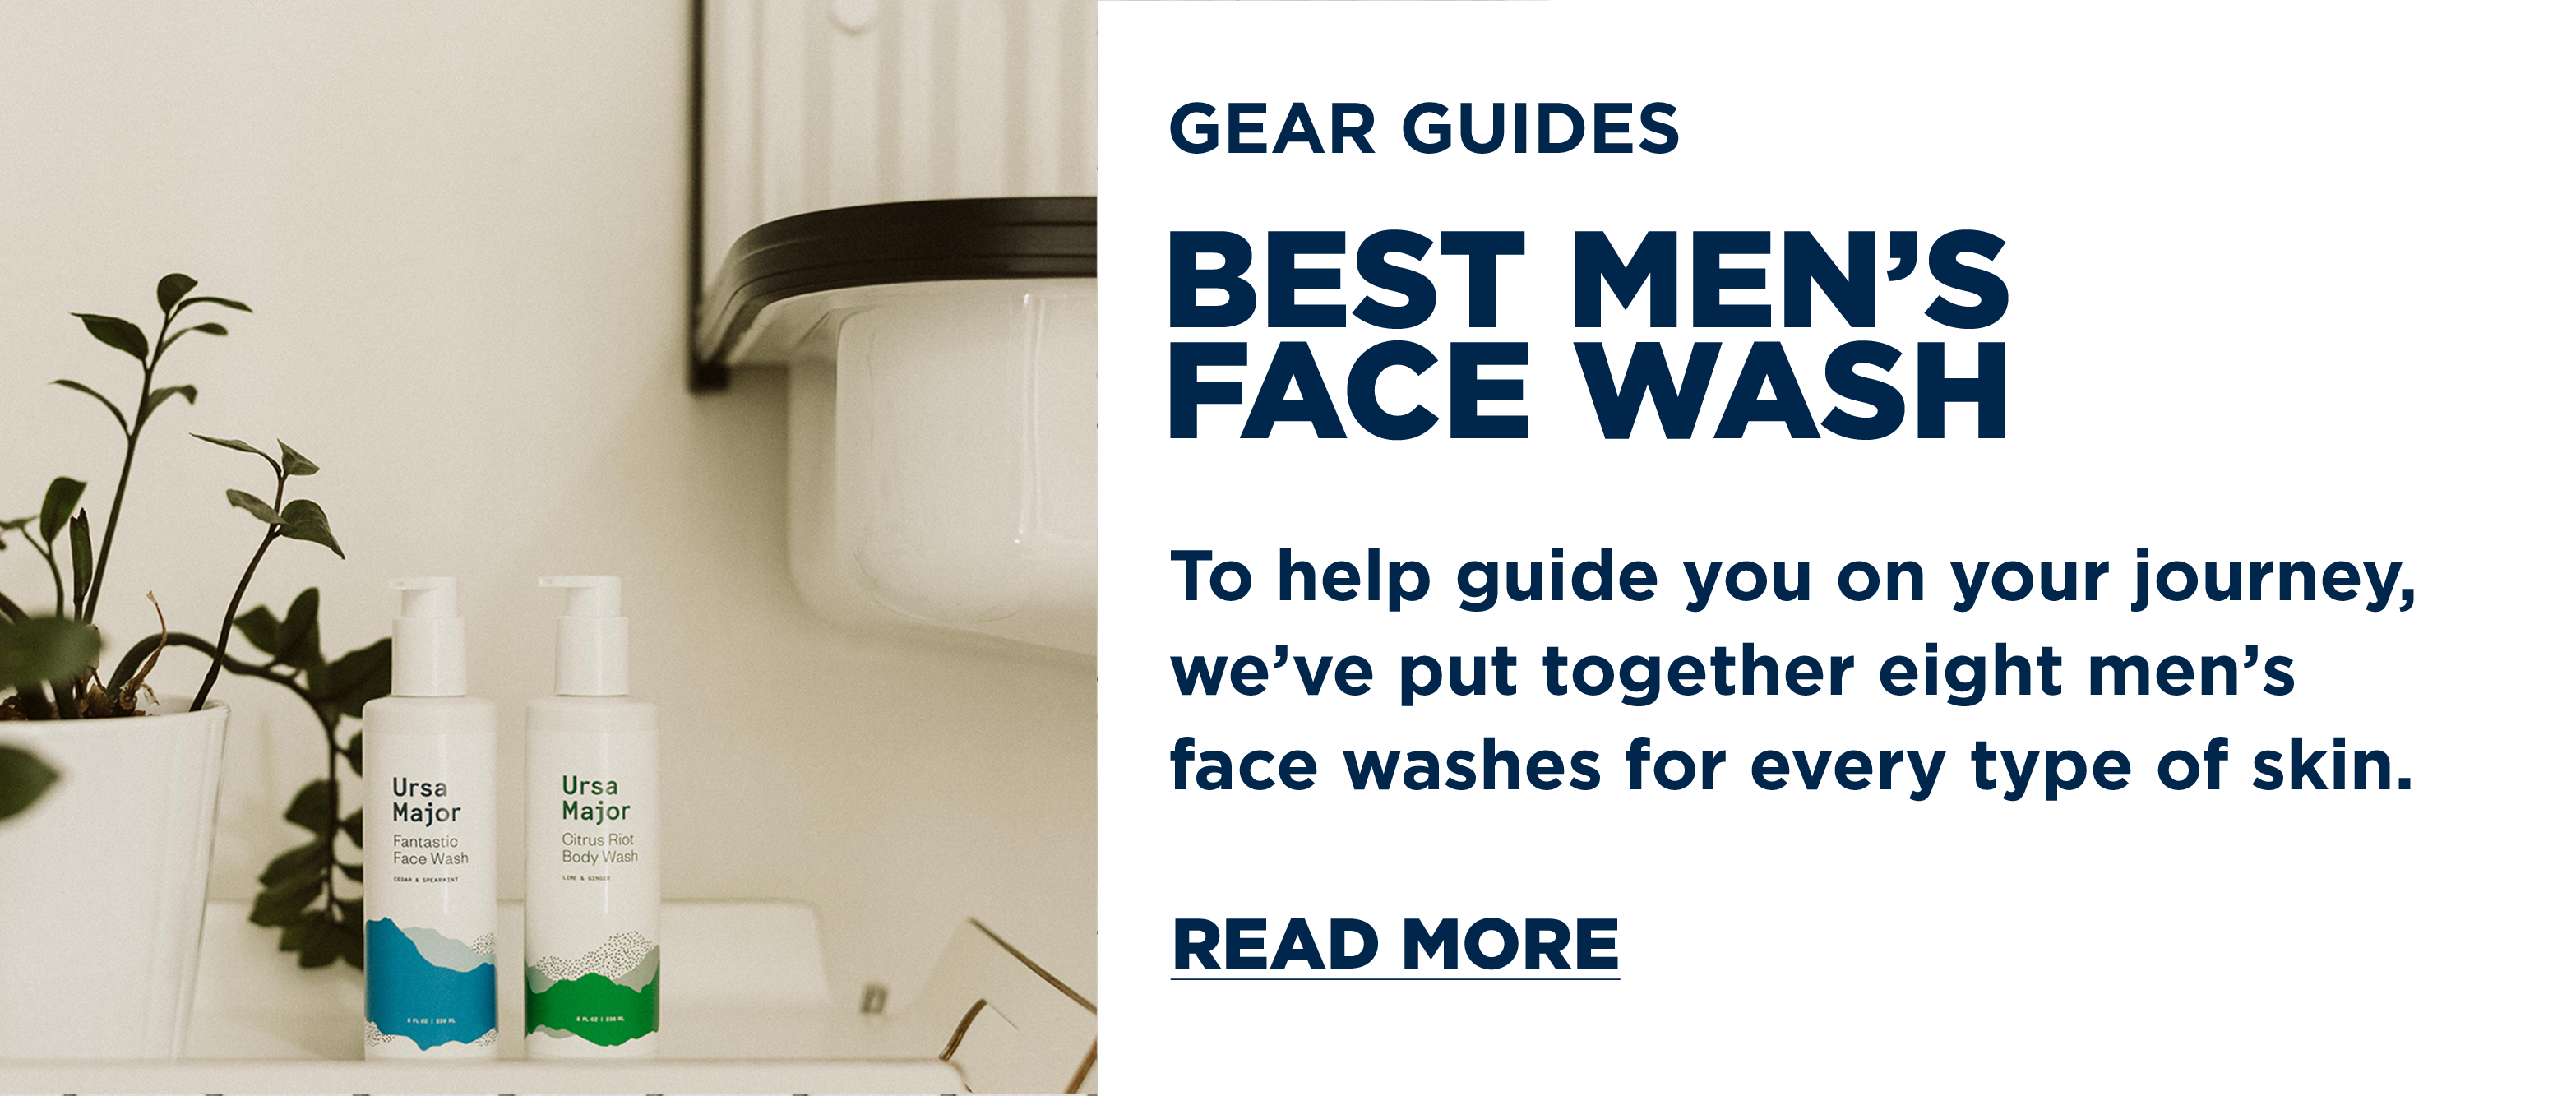 Our Top Picks For Face Washes